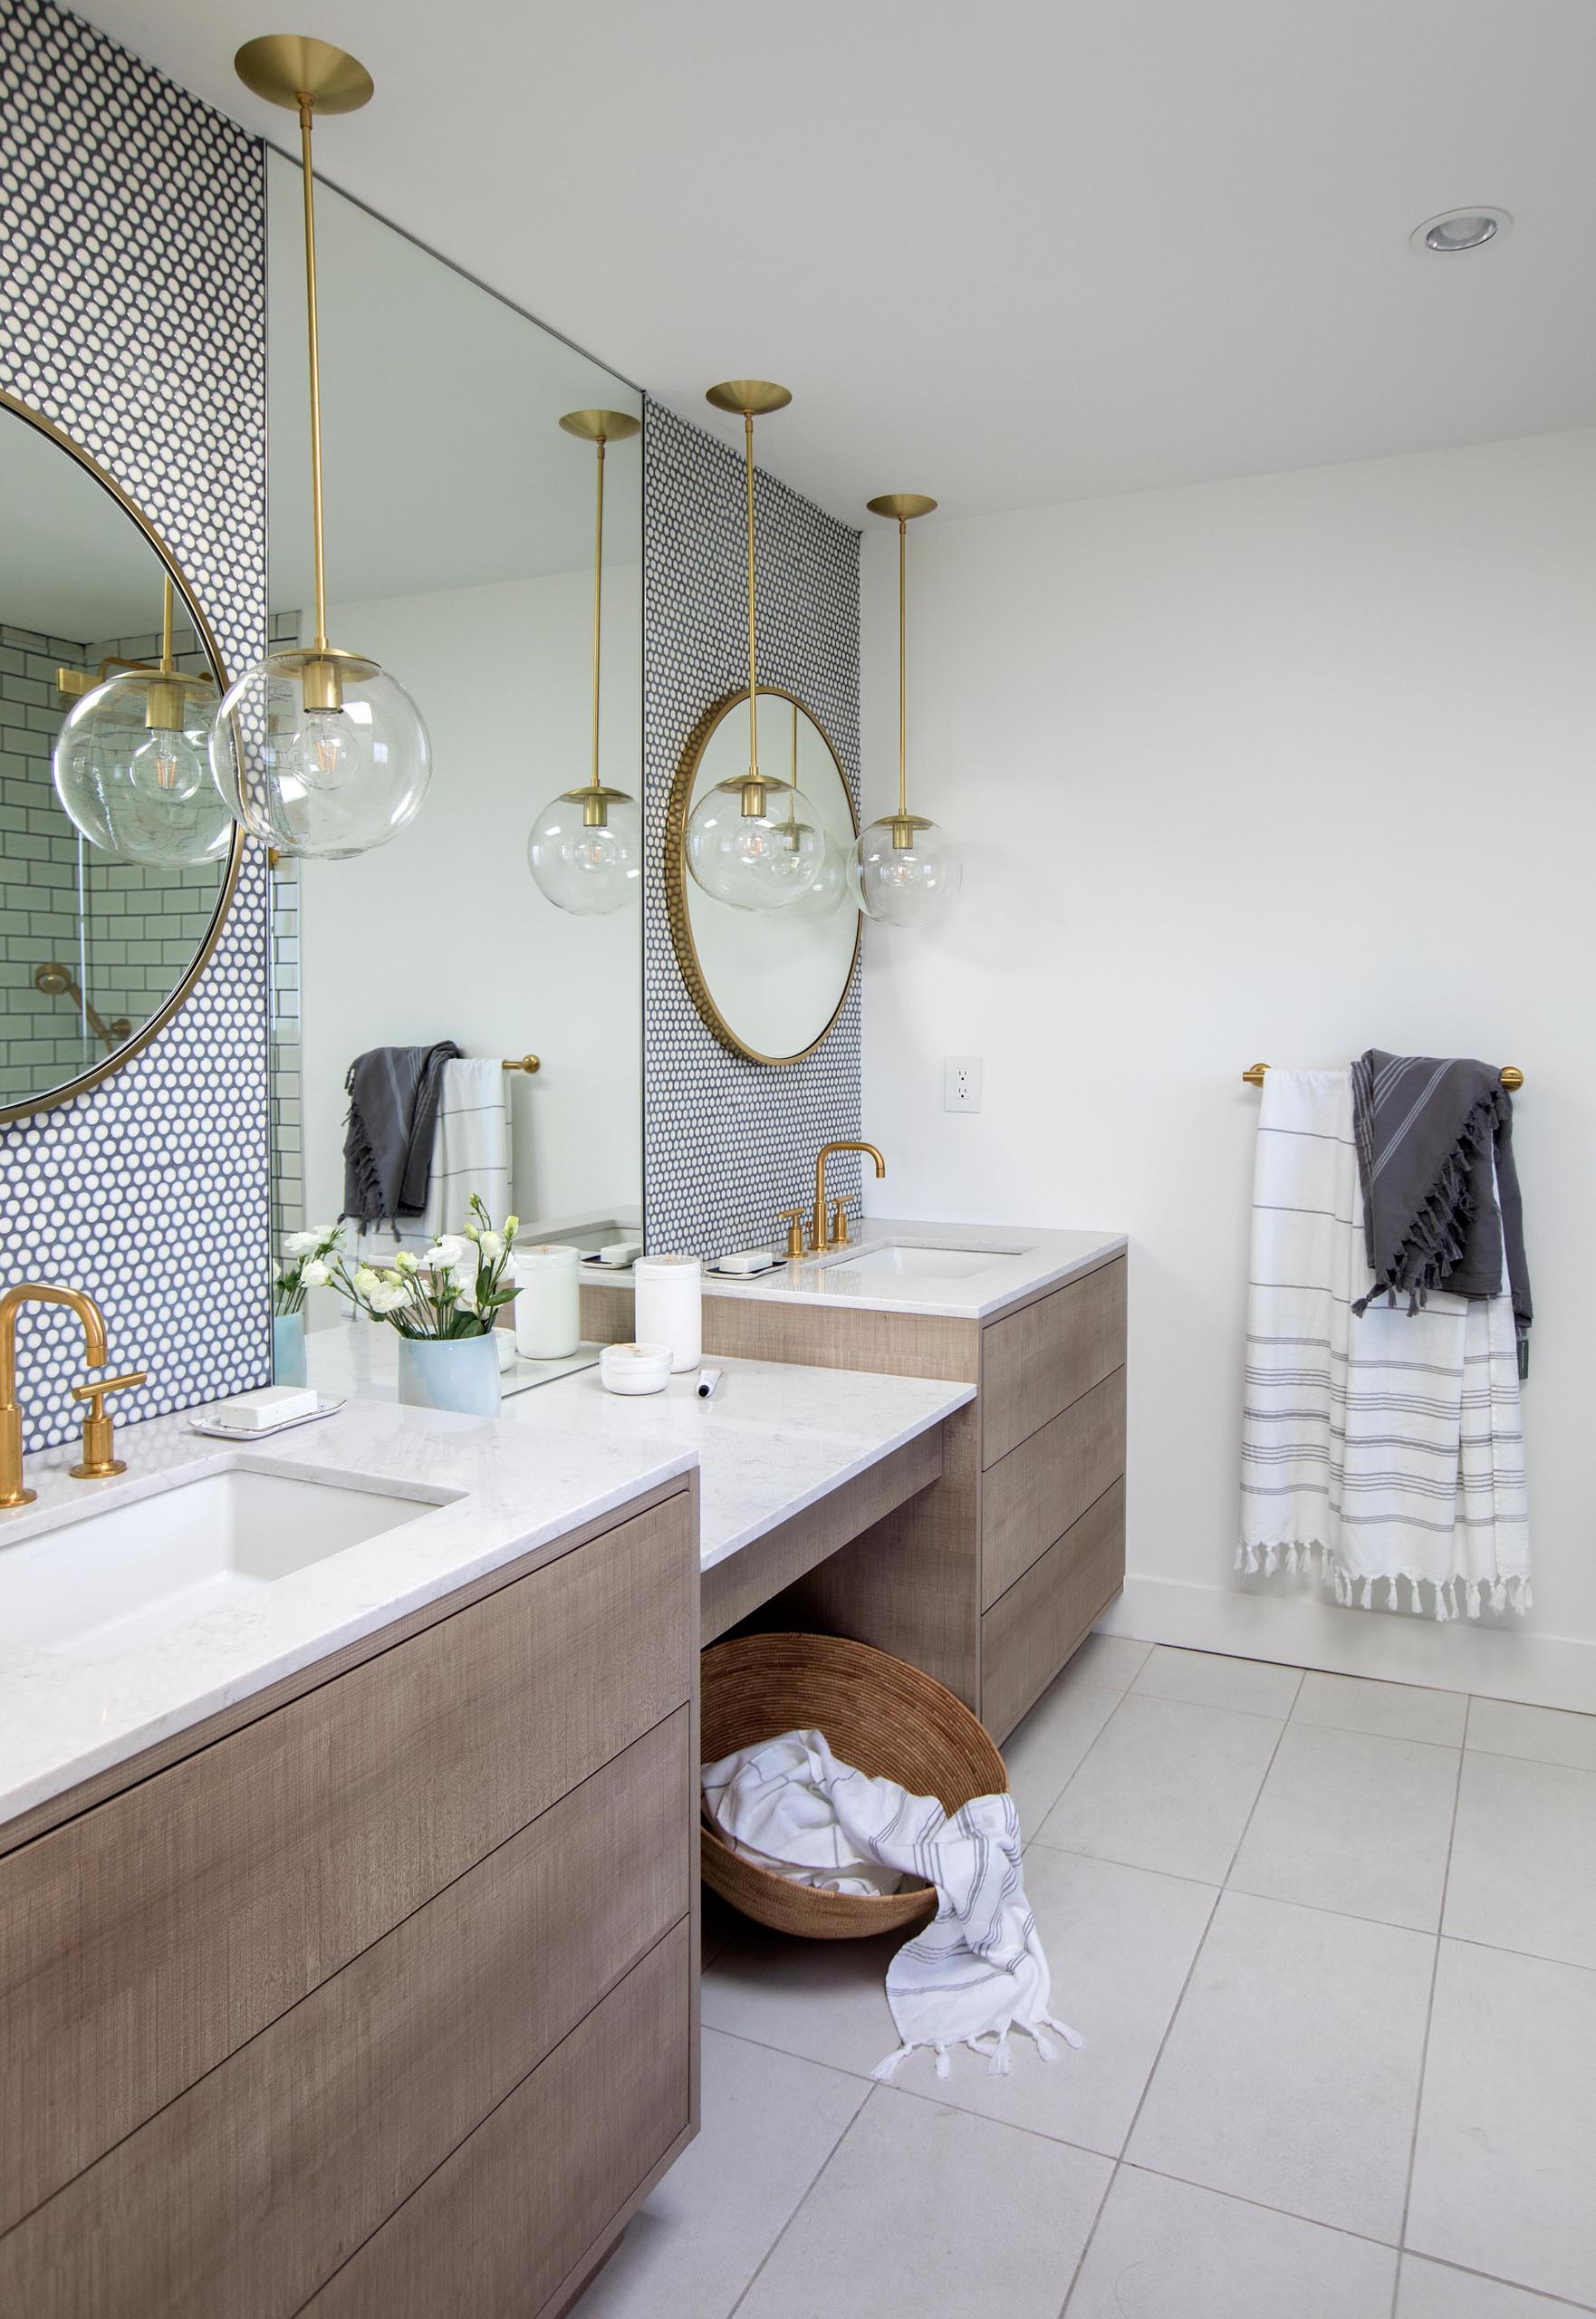 This modern master bathroom includes penny tile with dark grout, a wood vanity with a drop down countertop between the sinks.